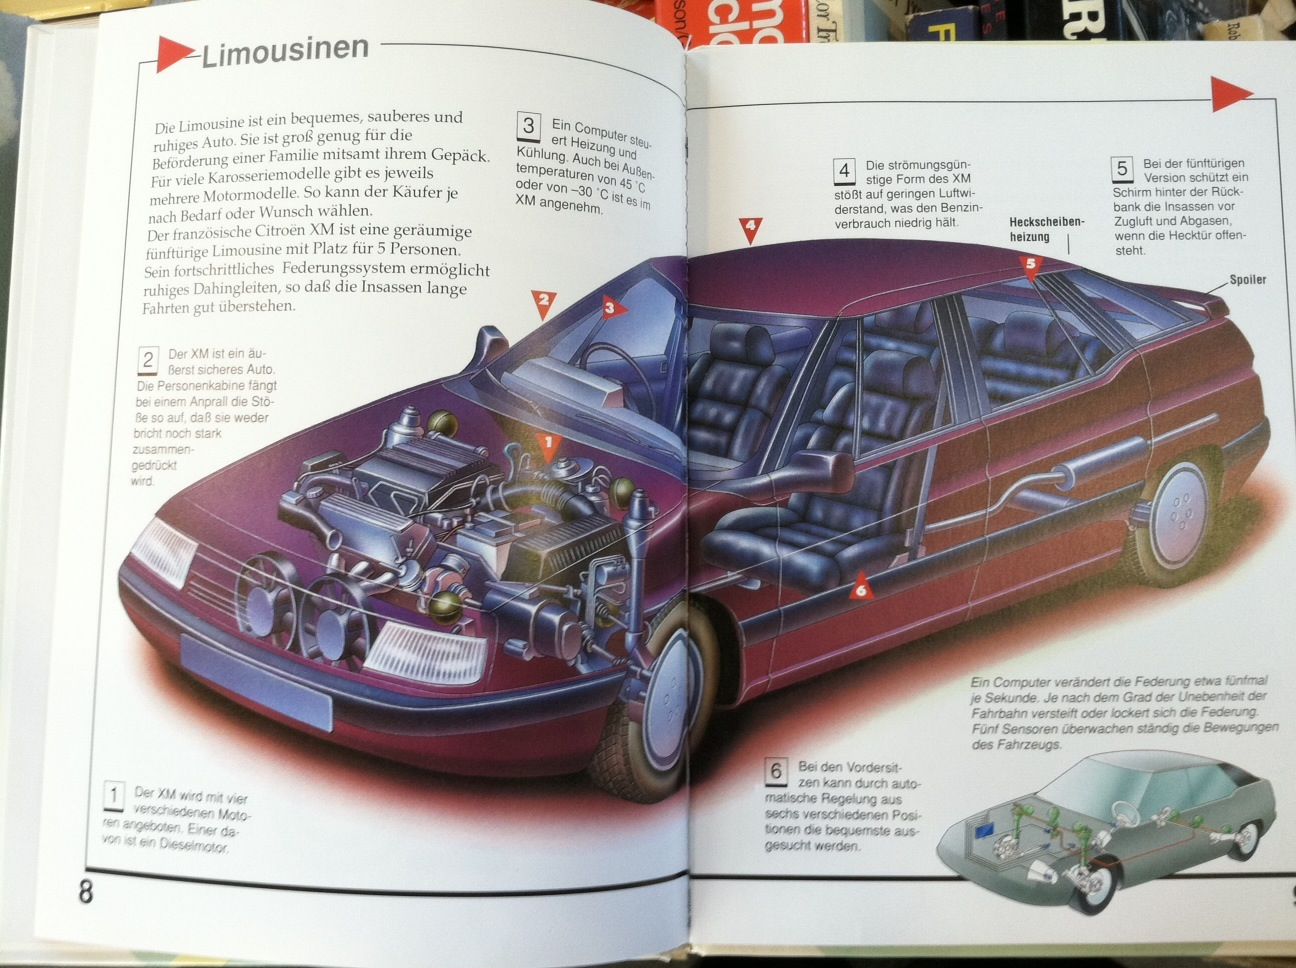 4 Persoons Design Bank.Tamerlane S Thoughts Cool German Children S Book About Cars